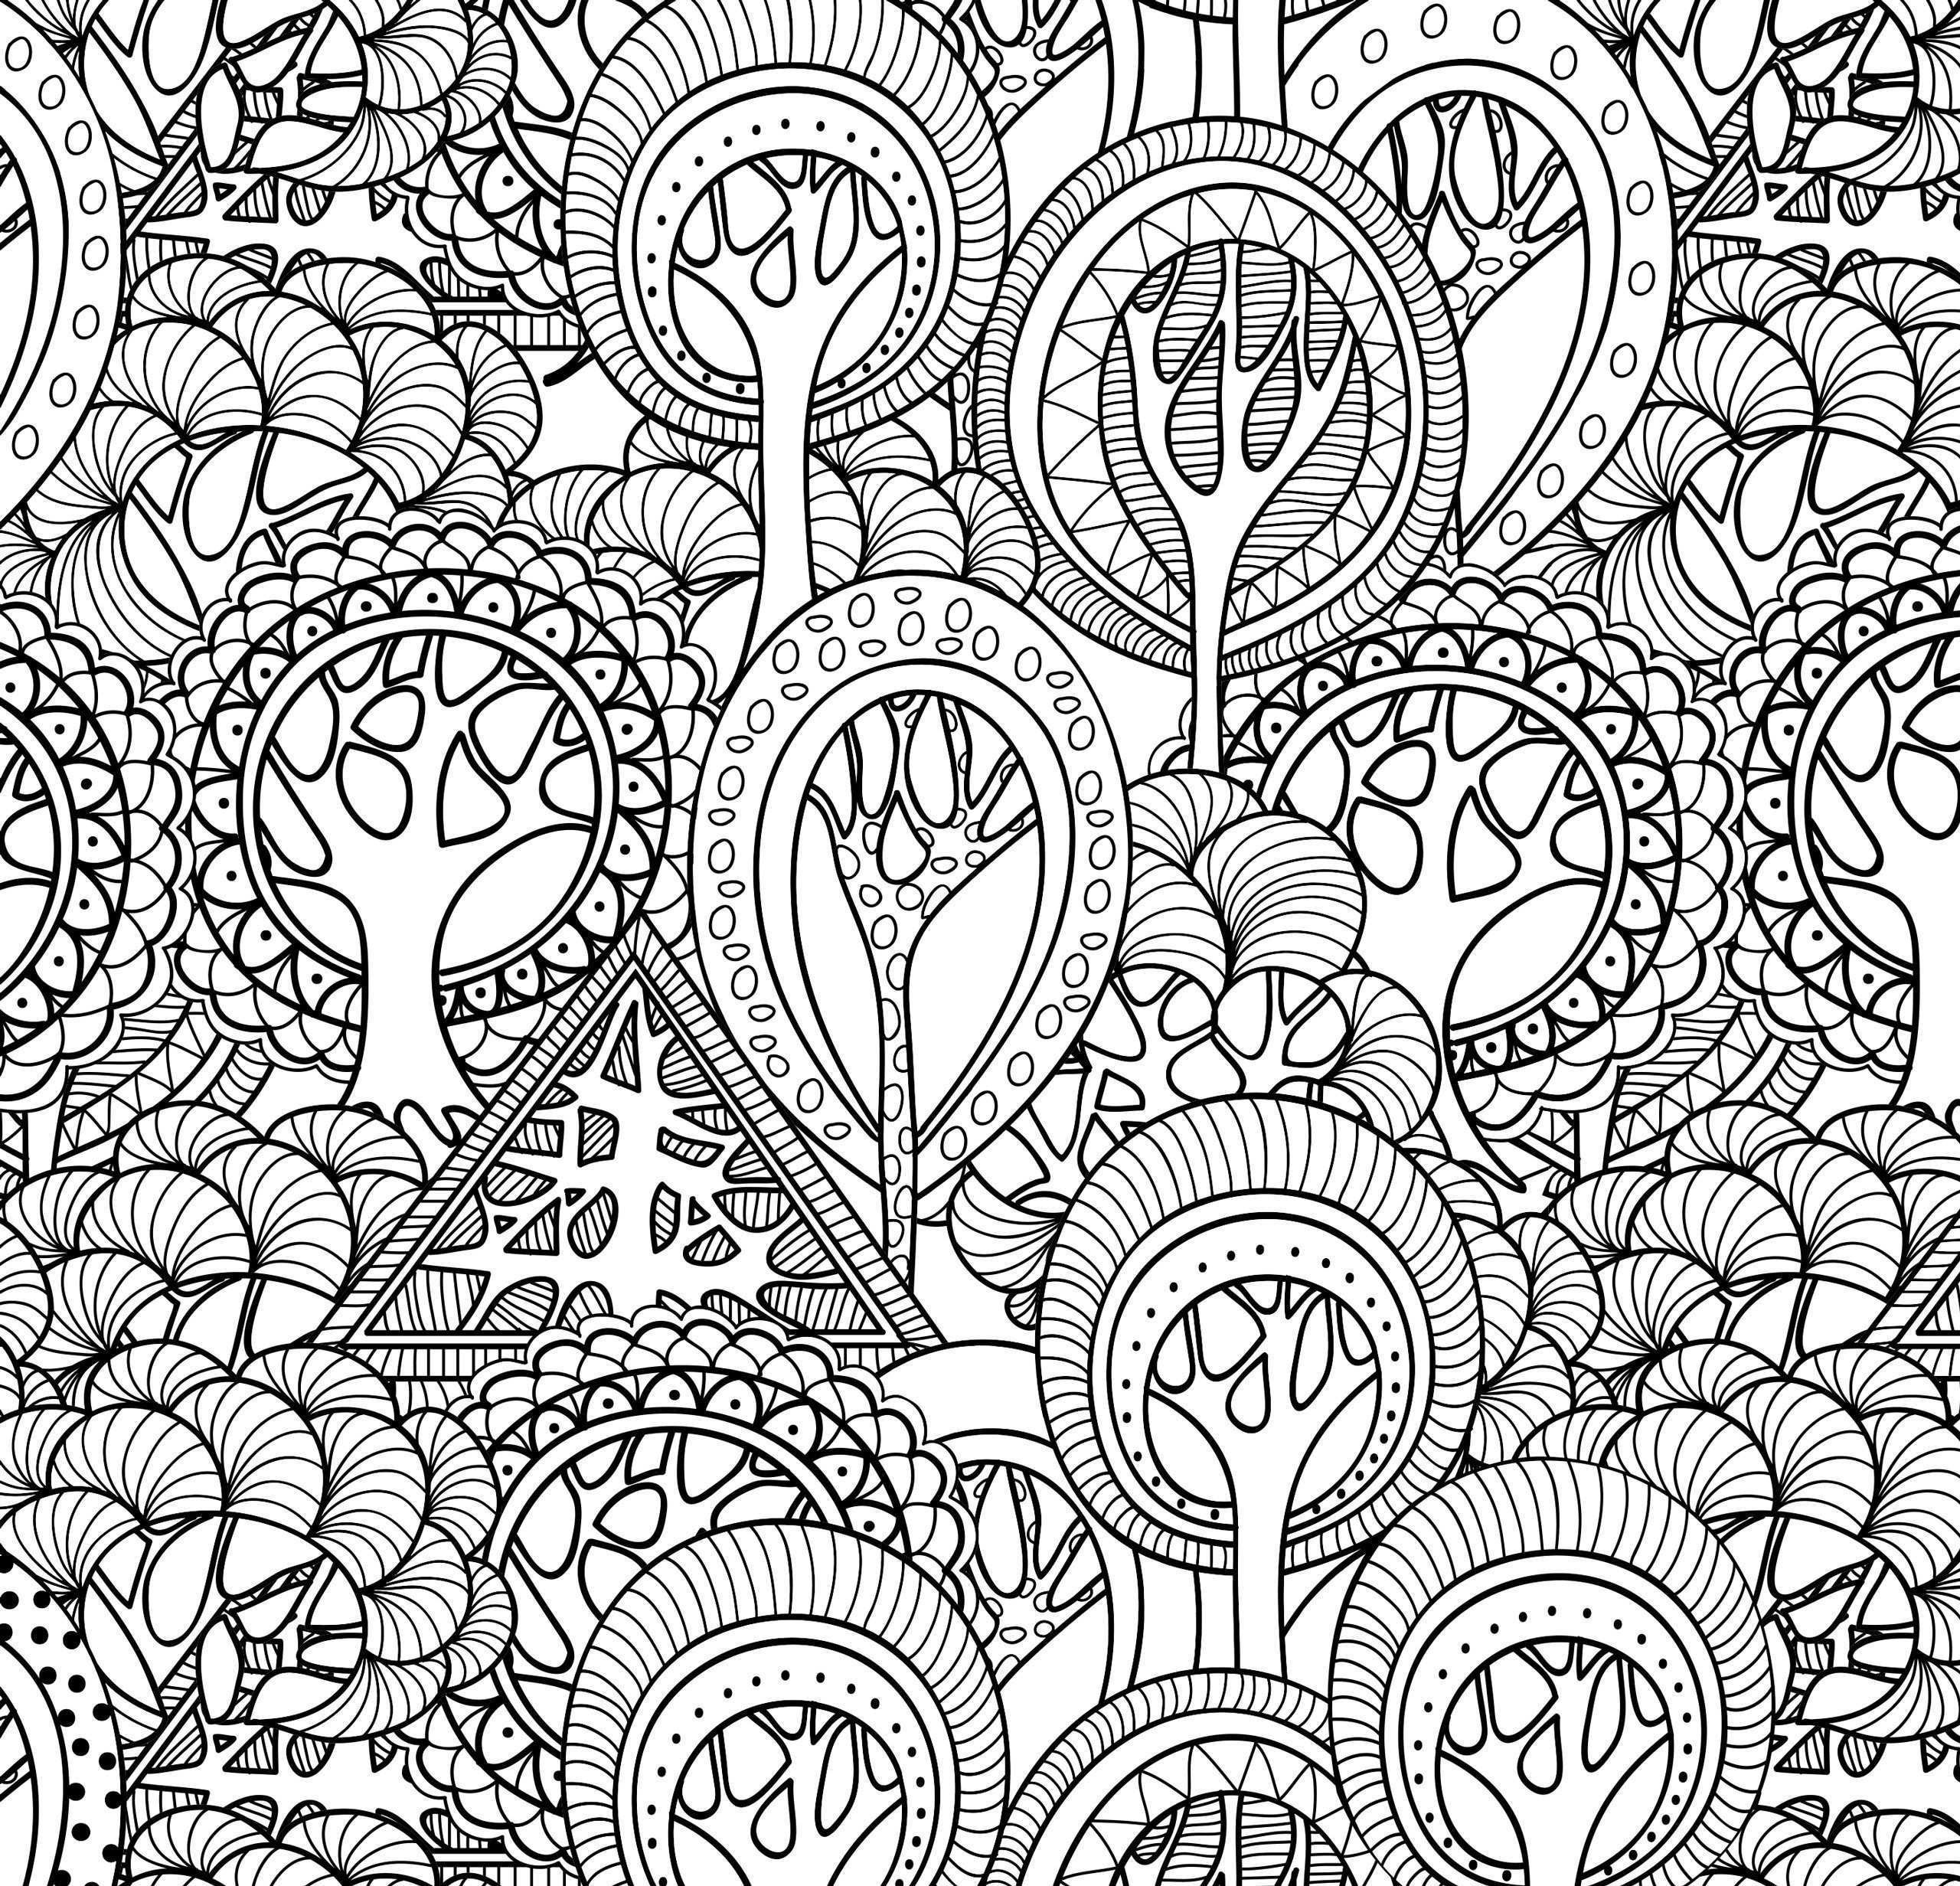 - Free Printable Complicated Coloring Pages Online Cool Coloring